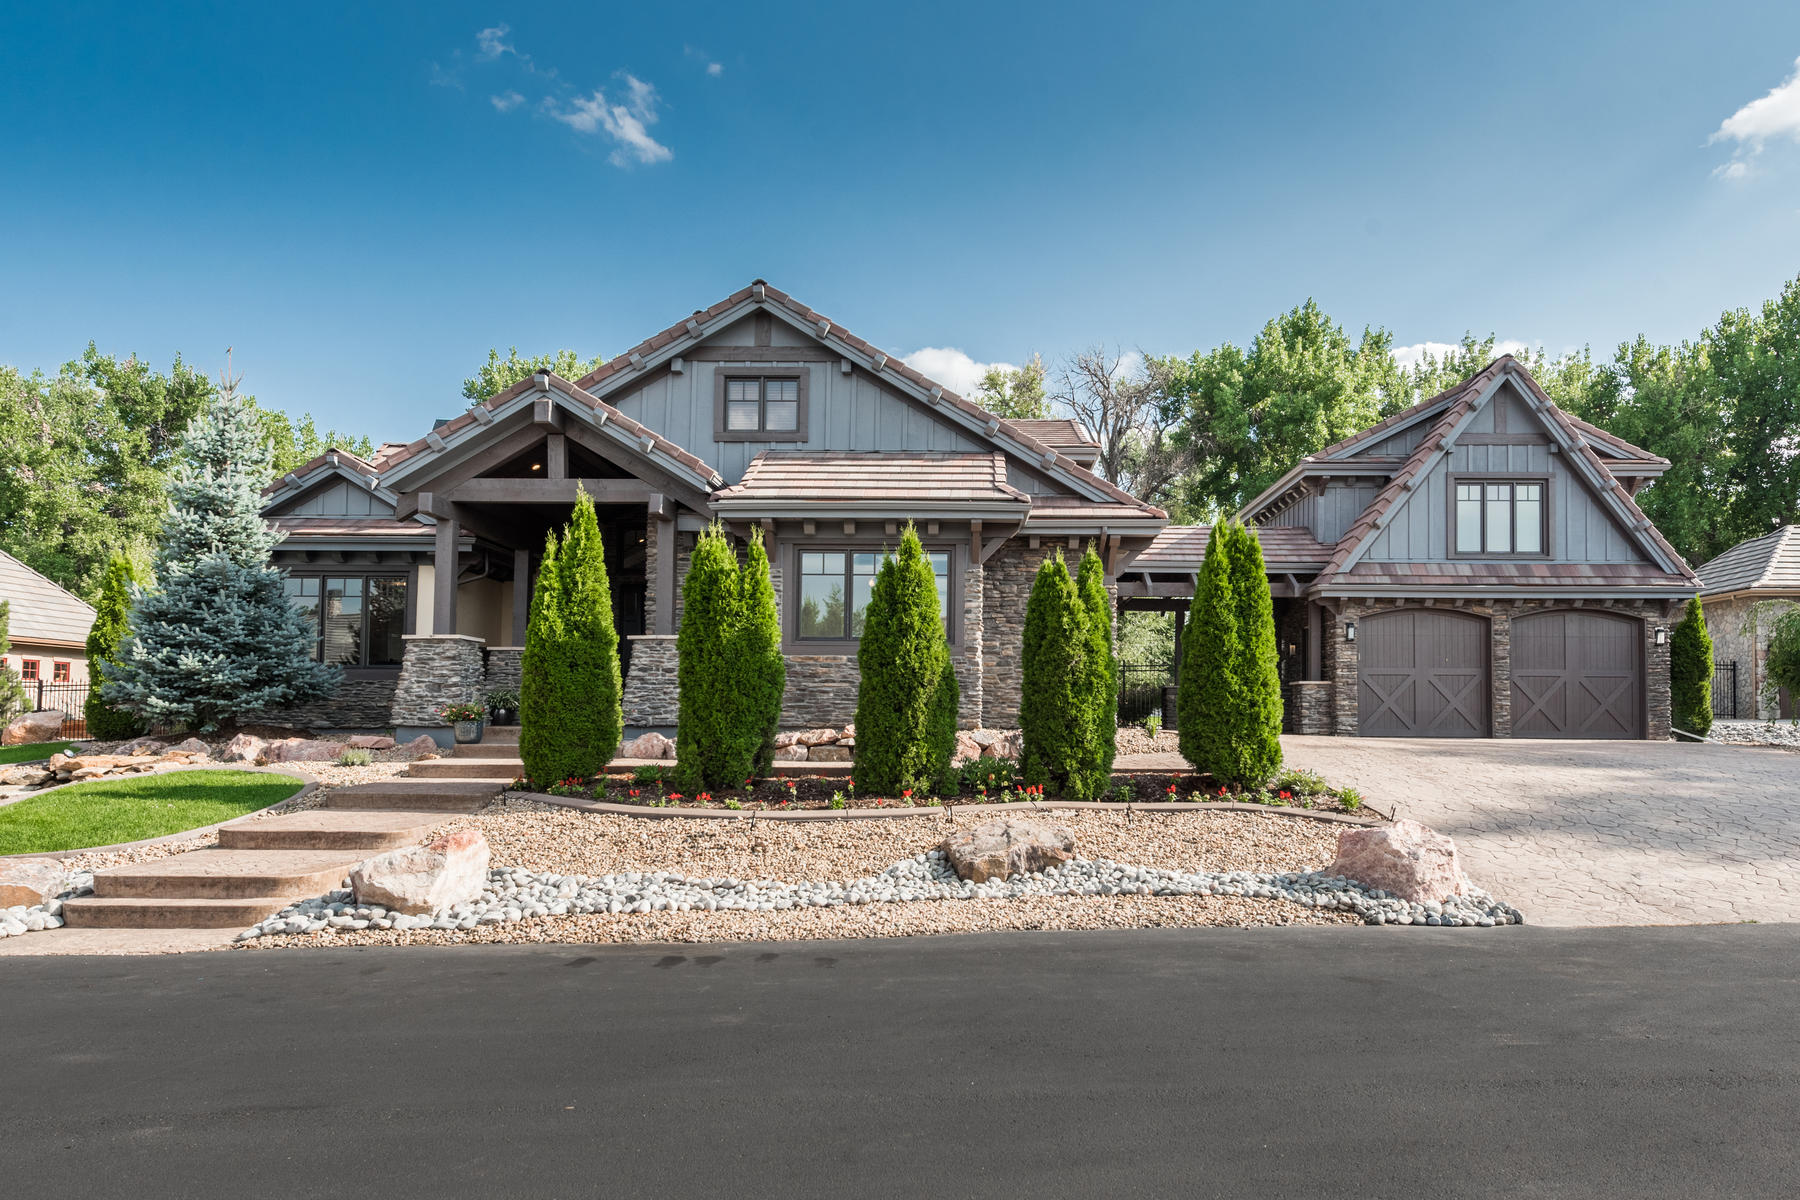 Property for Active at One Of Only Nine Luxury Residences At The Gated Orr Estates Enclave 1536 E Fair Pl Centennial, Colorado 80121 United States